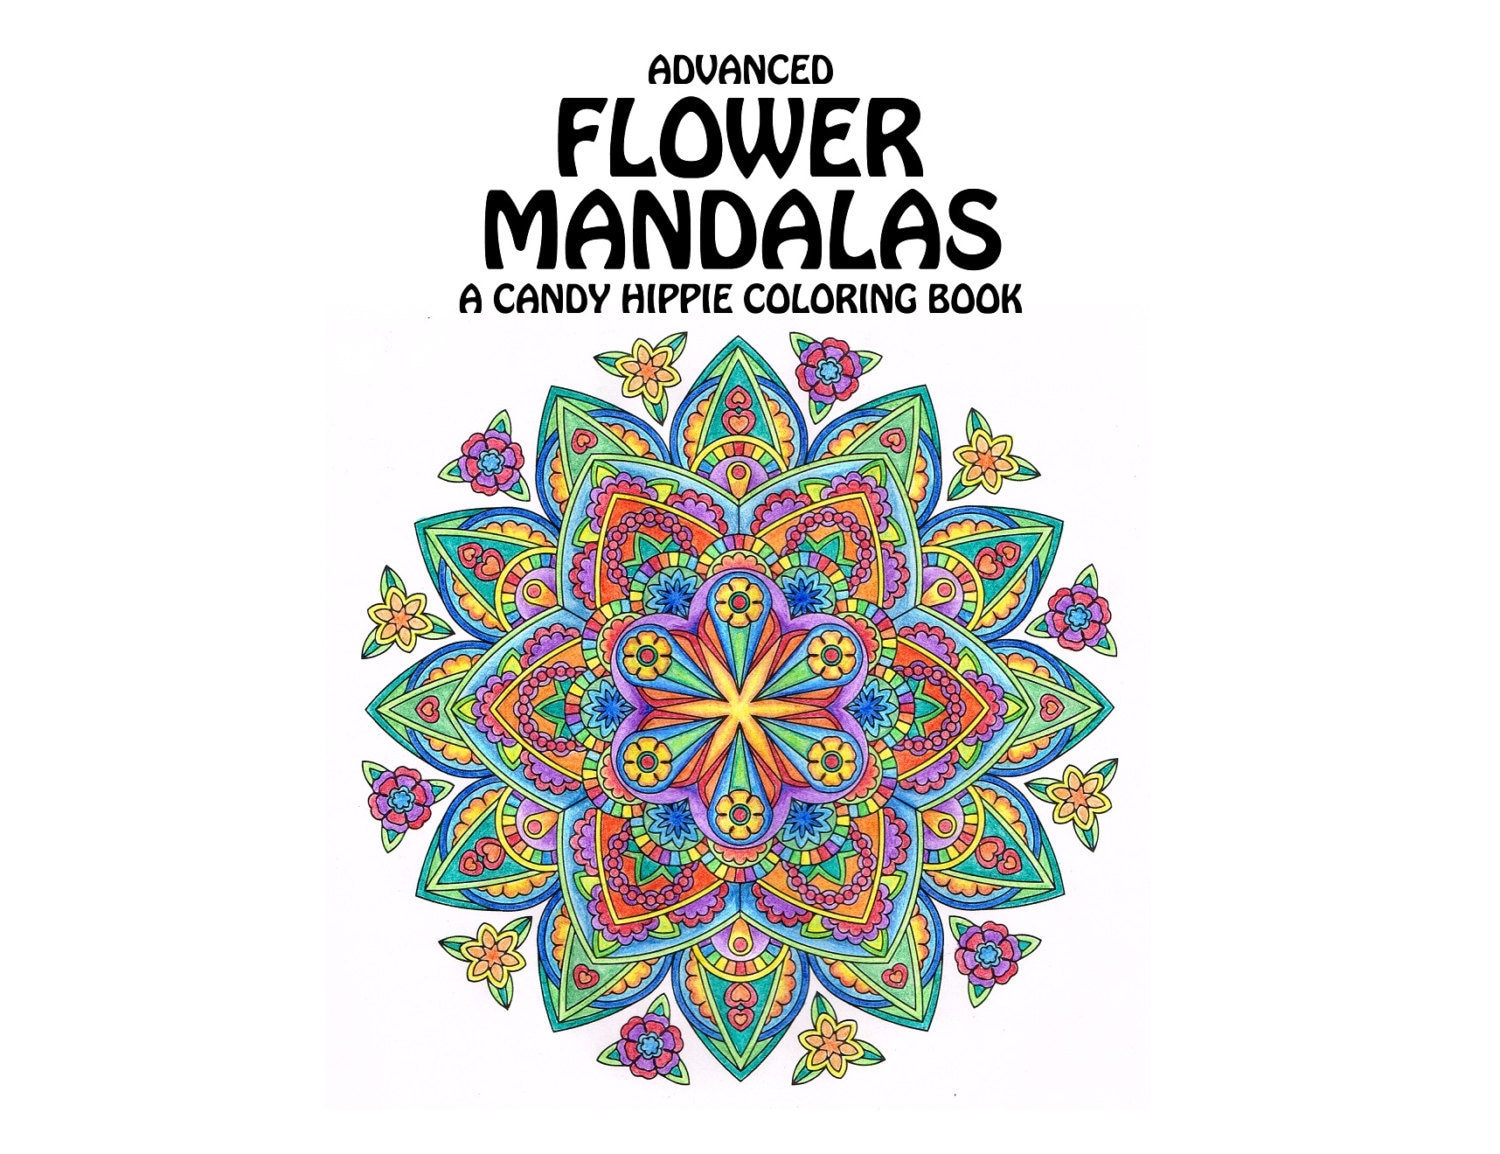 Advanced Flower Mandalas Adult Coloring Book Printable Mindfulness Coloring Book 12 Adult Coloring Pages Get Well Soon Gift